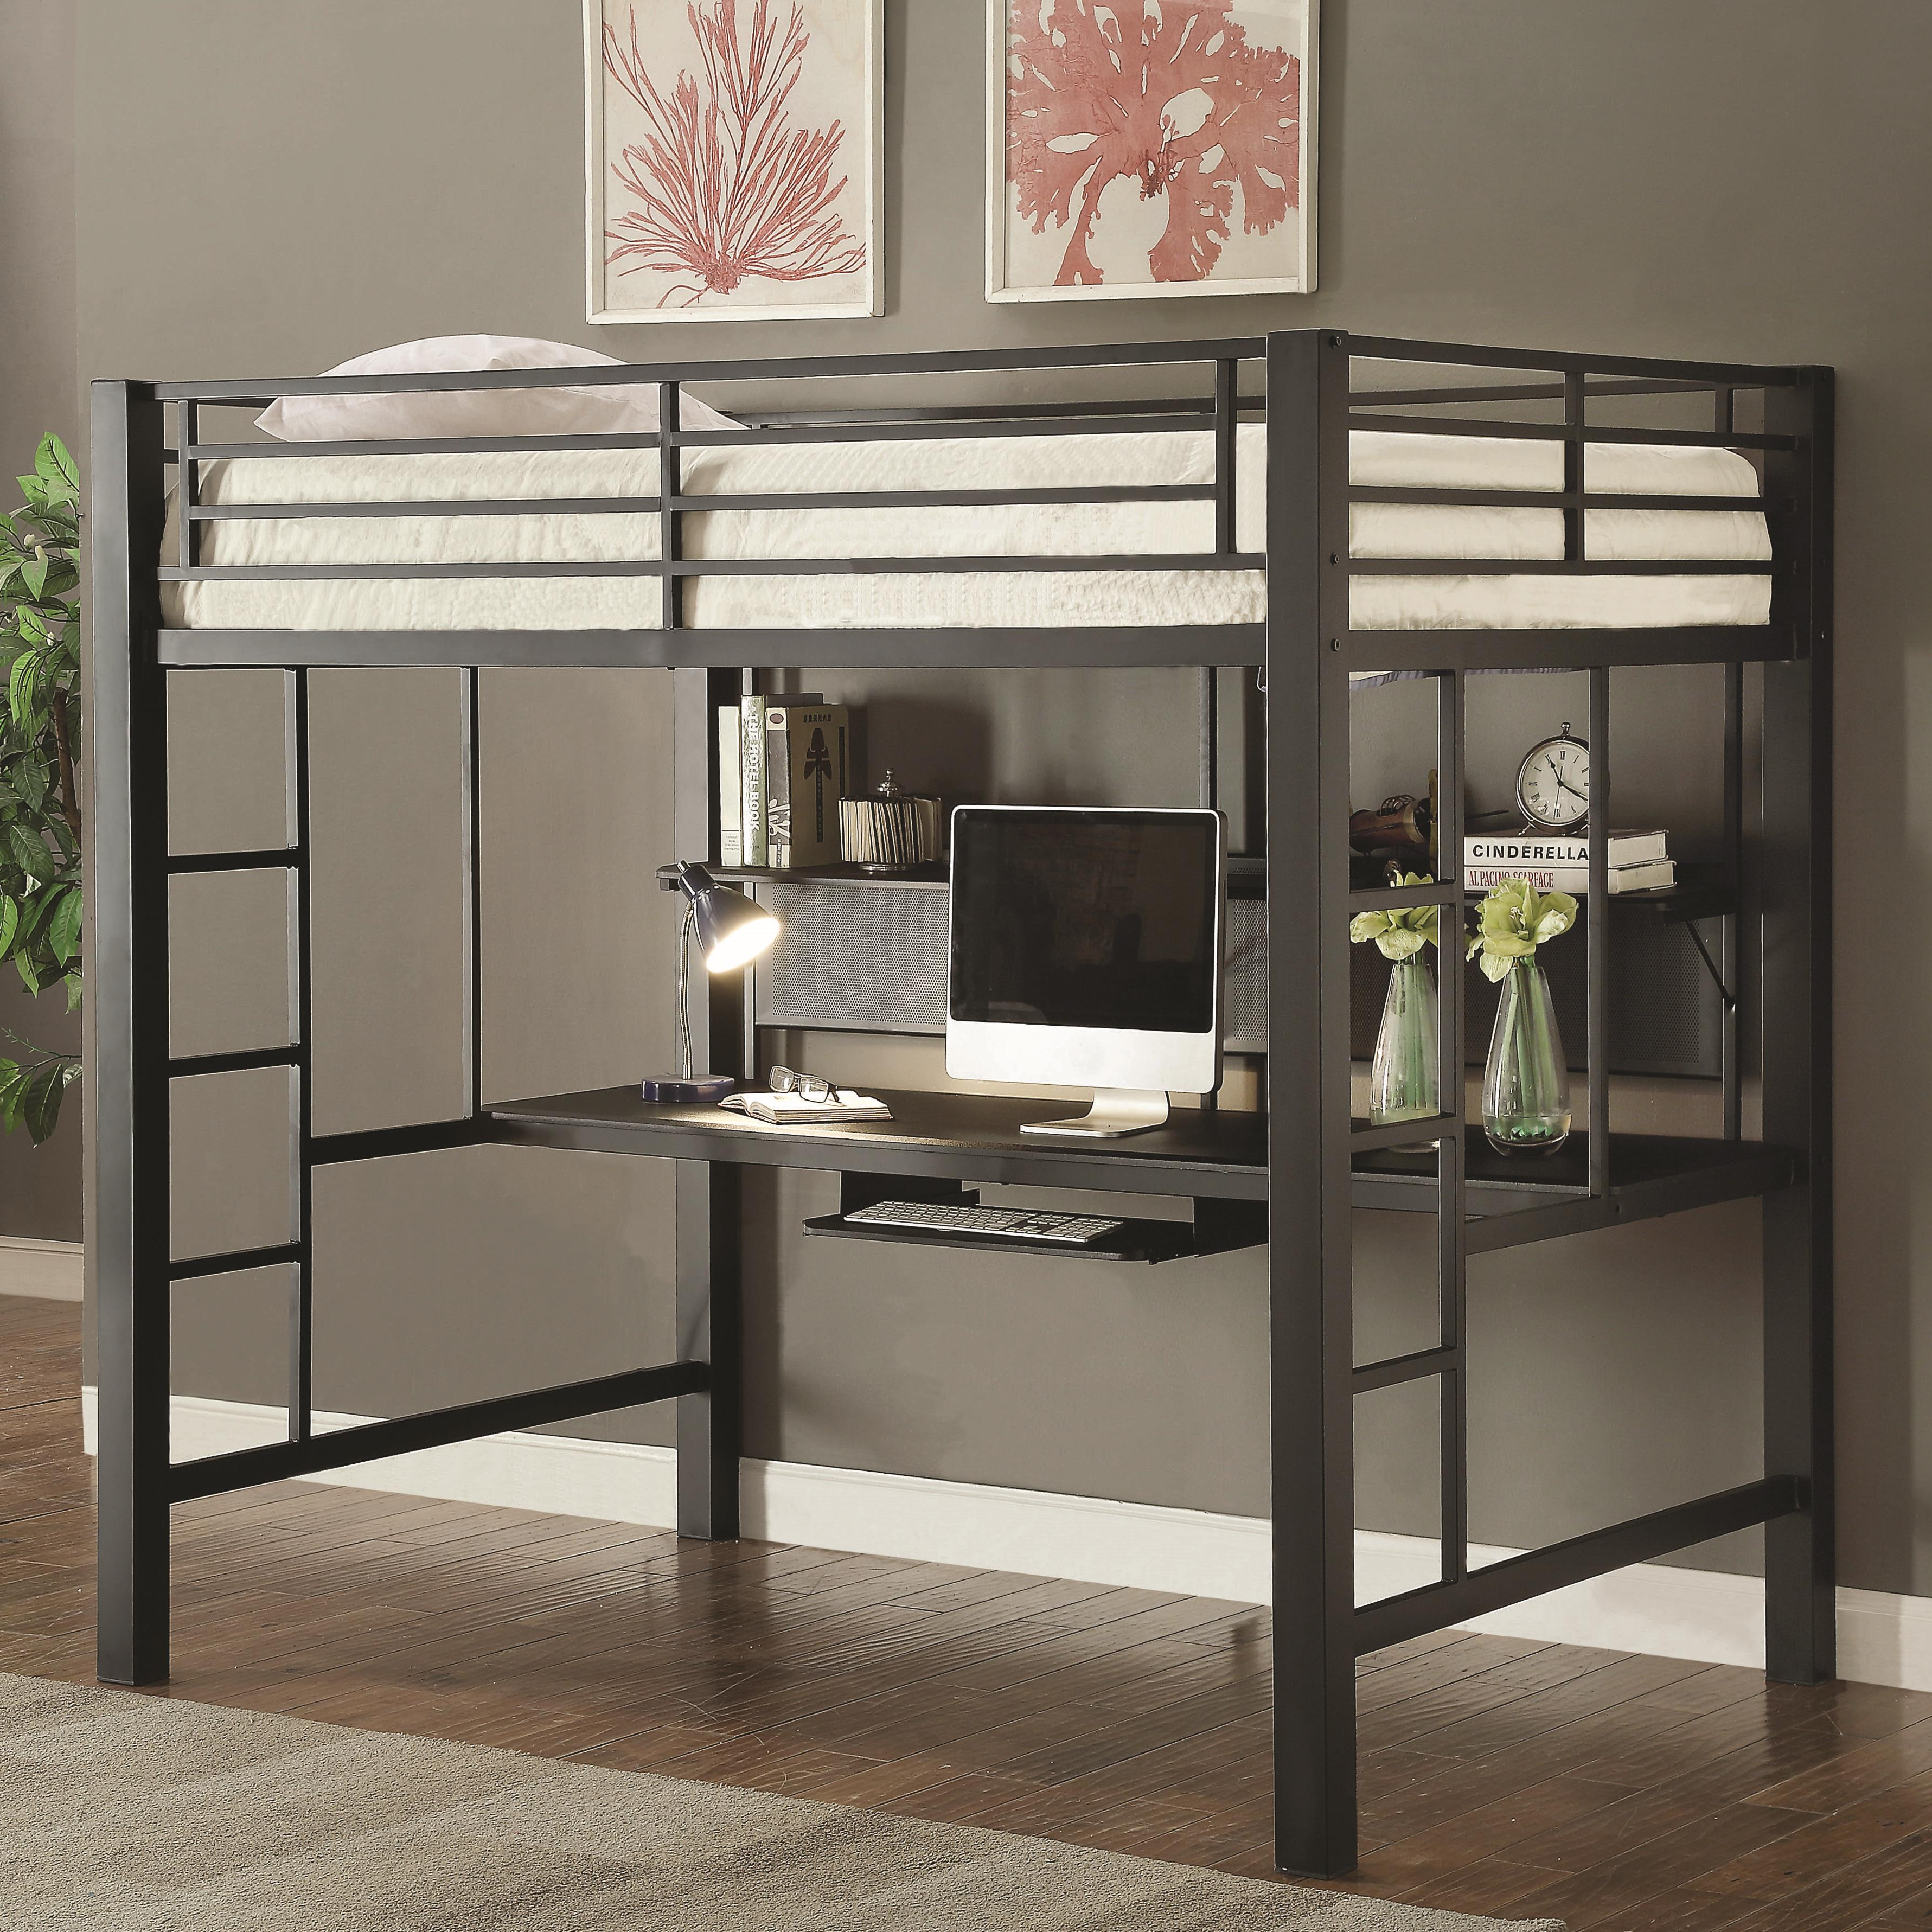 Bunks Workstation Loft Bed by Coaster at Northeast Factory Direct